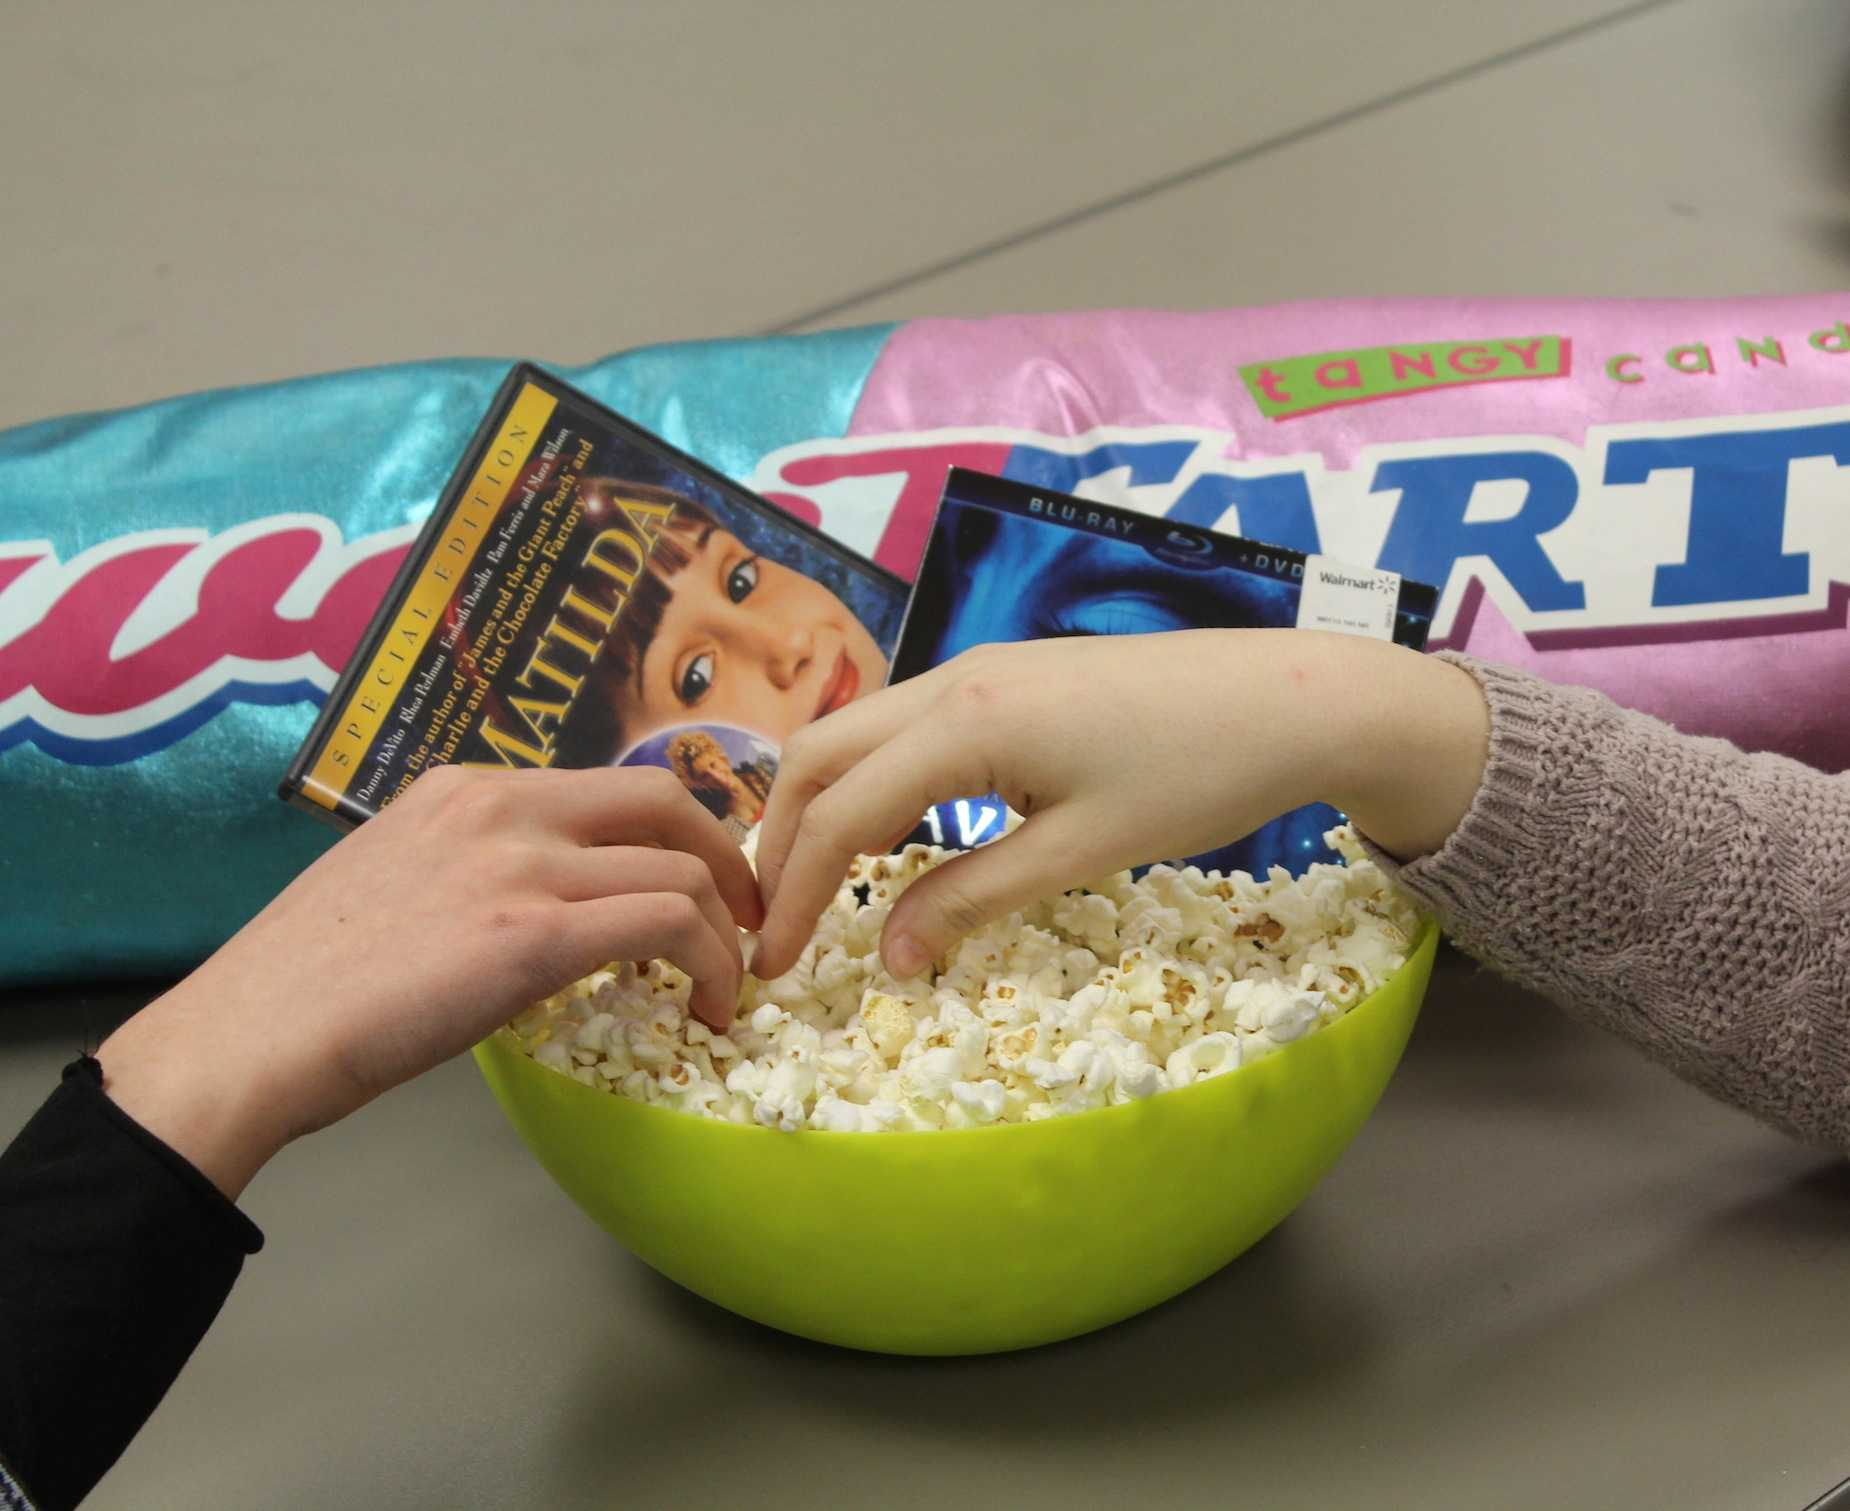 Need a good way to spend time after prom? Watching movies, make popcorn, and accidentally bump hands with your crush when reaching into the popcorn bowl. Make sure to provide plenty of butter, salt, and popcorn seasoning, or even add skittles or M&M's for sweetness.